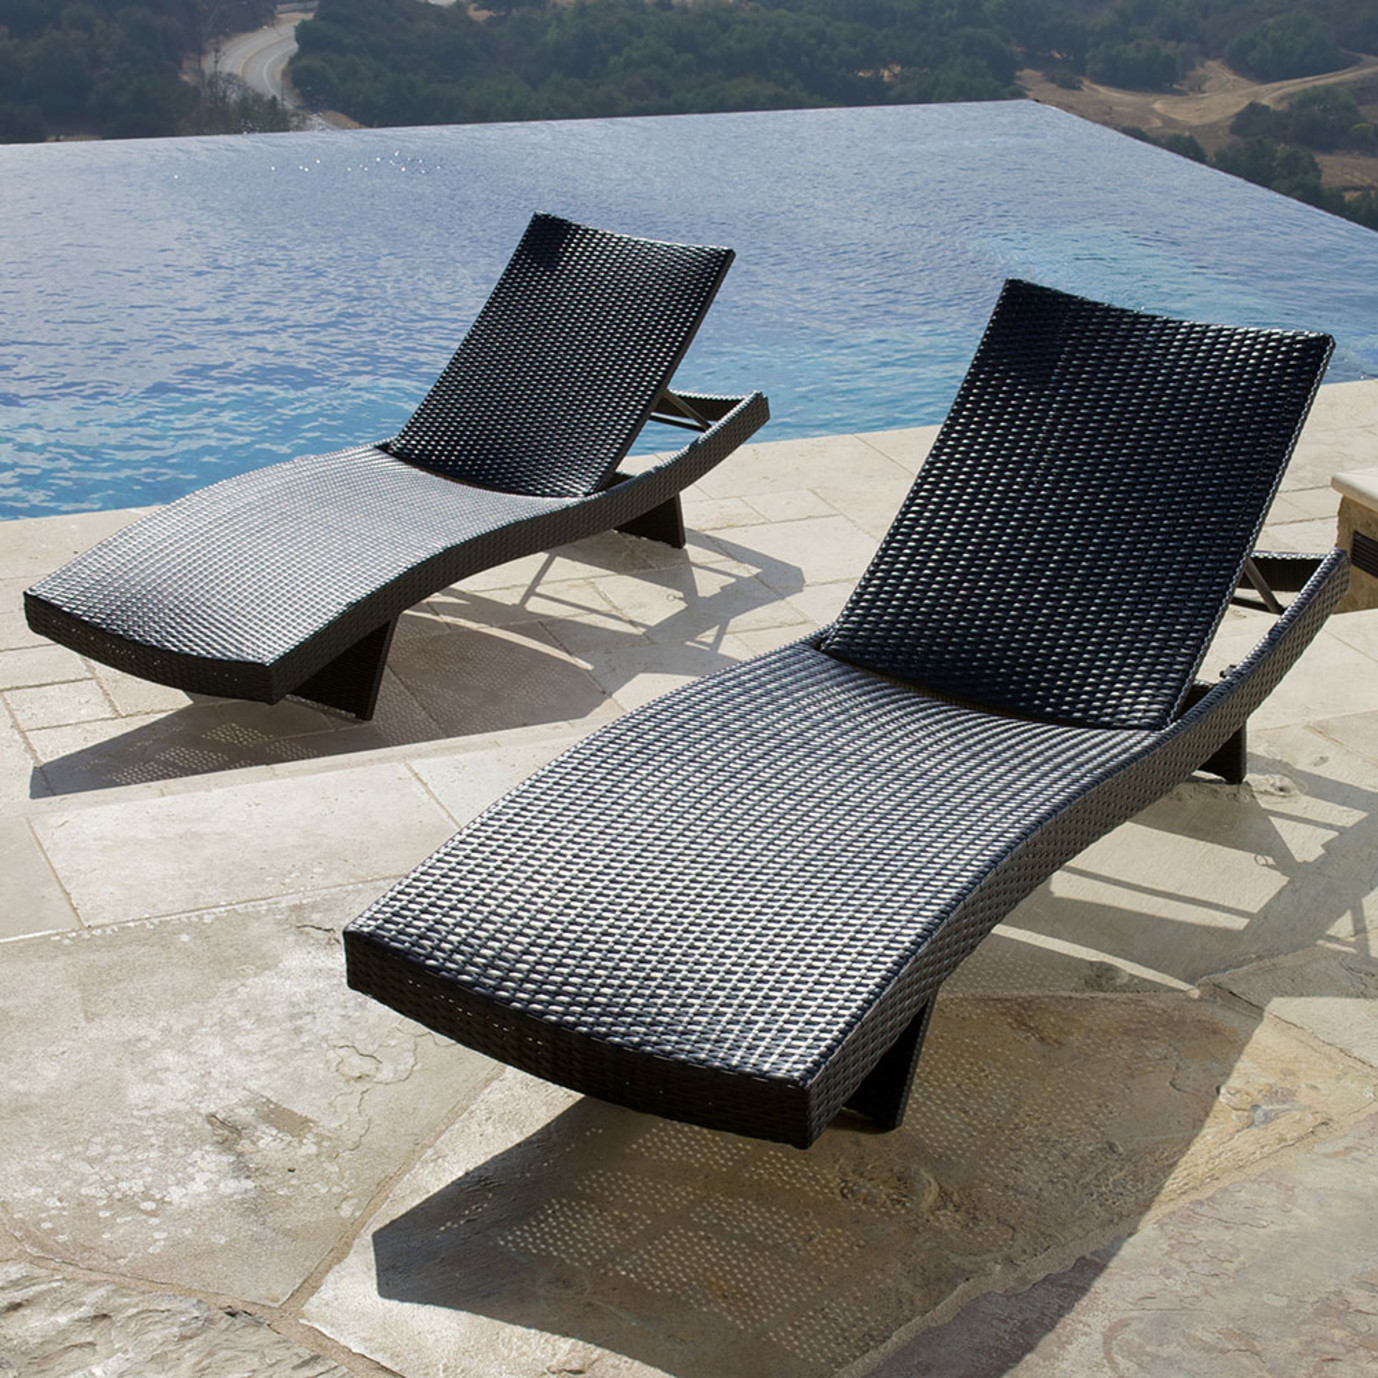 Portofino® Comfort 2 Loungers & Table - Espresso